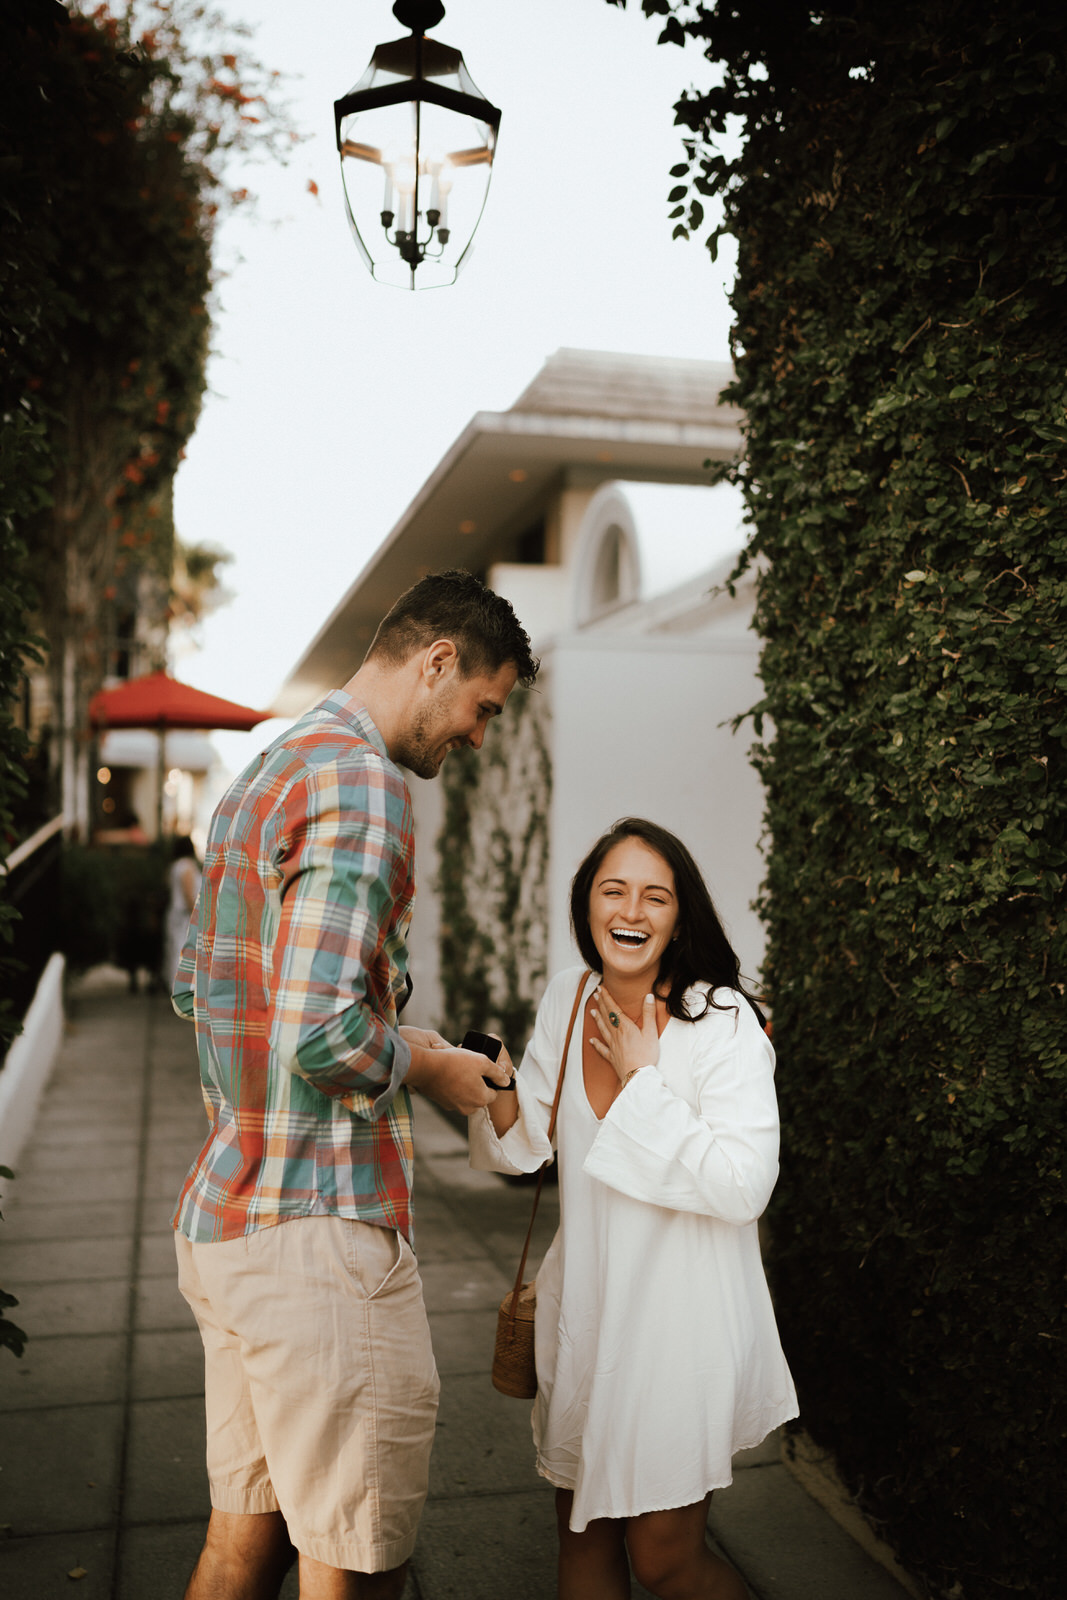 Naples 5th Ave Proposal Photos- Michelle Gonzalez Photography- Matt and Jenna-22.JPG